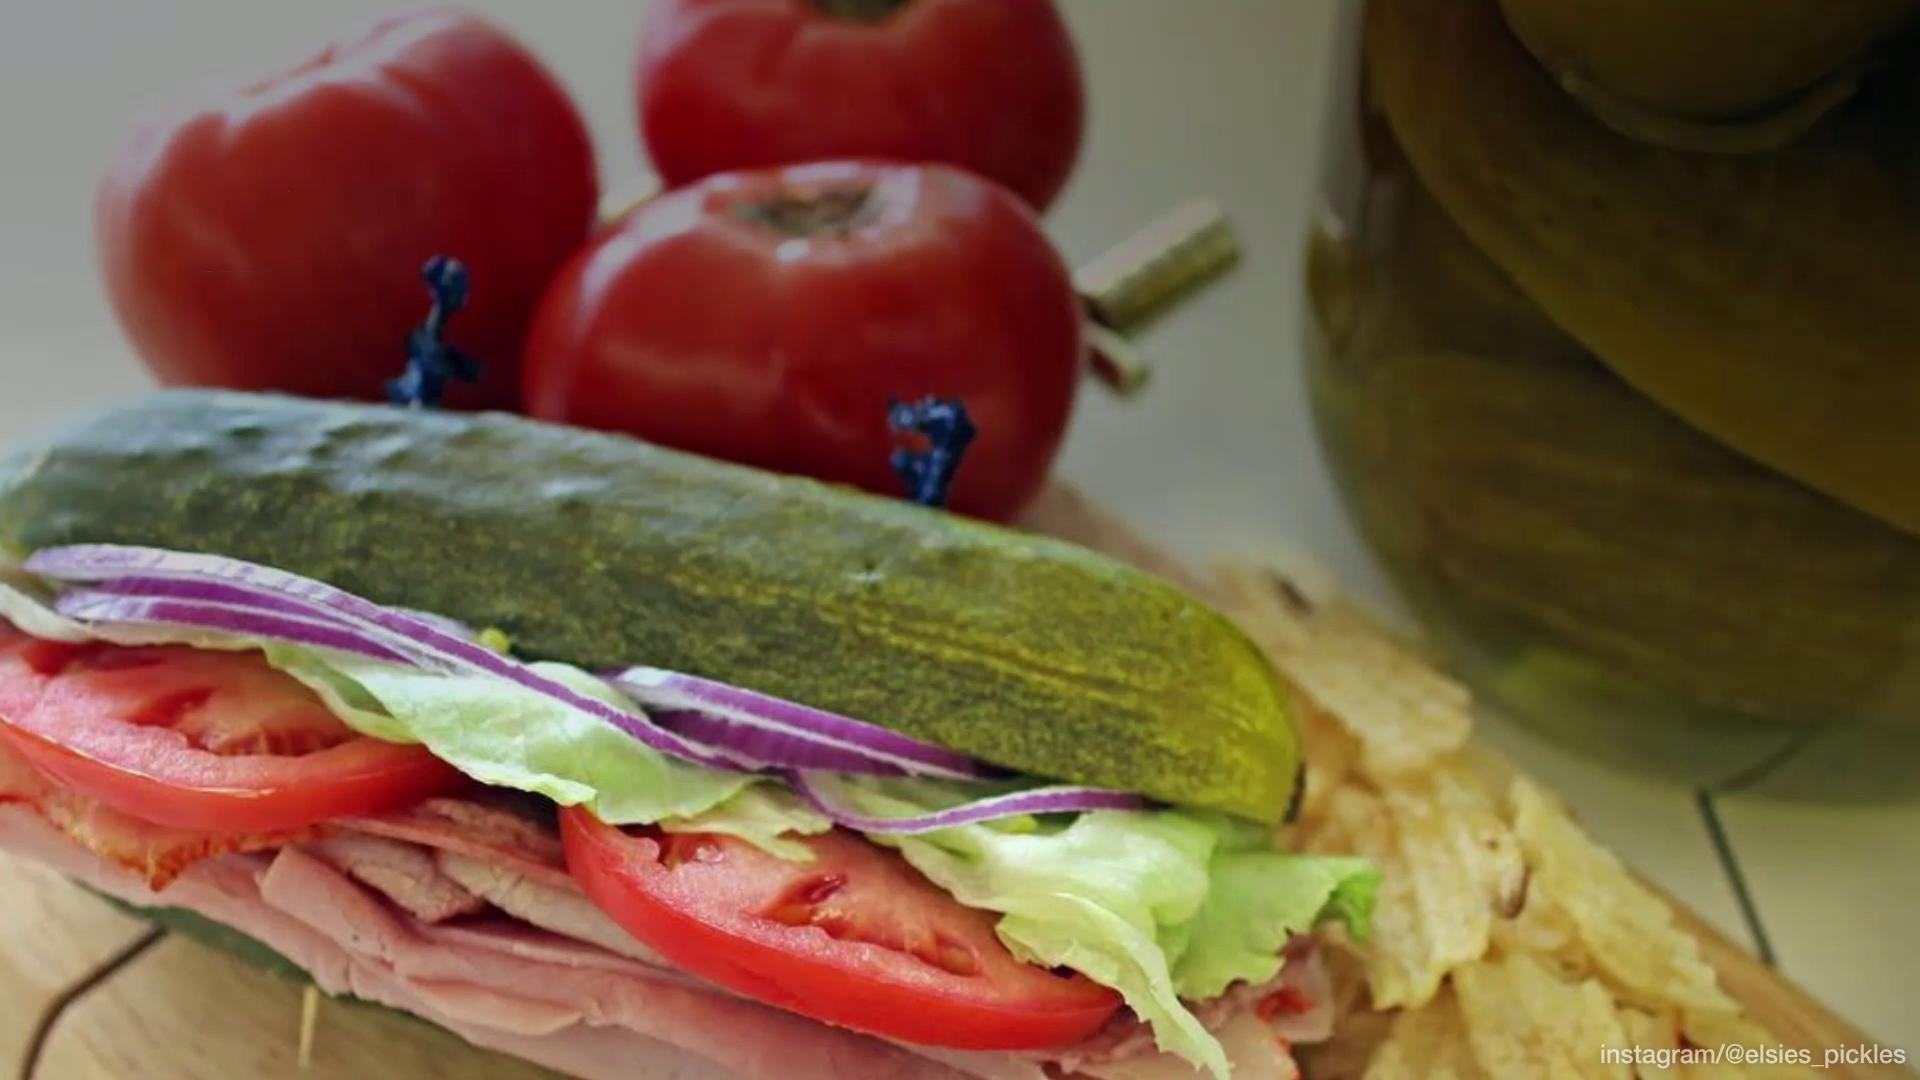 This Pickle Sandwich Exists and It's a Very Big Dill